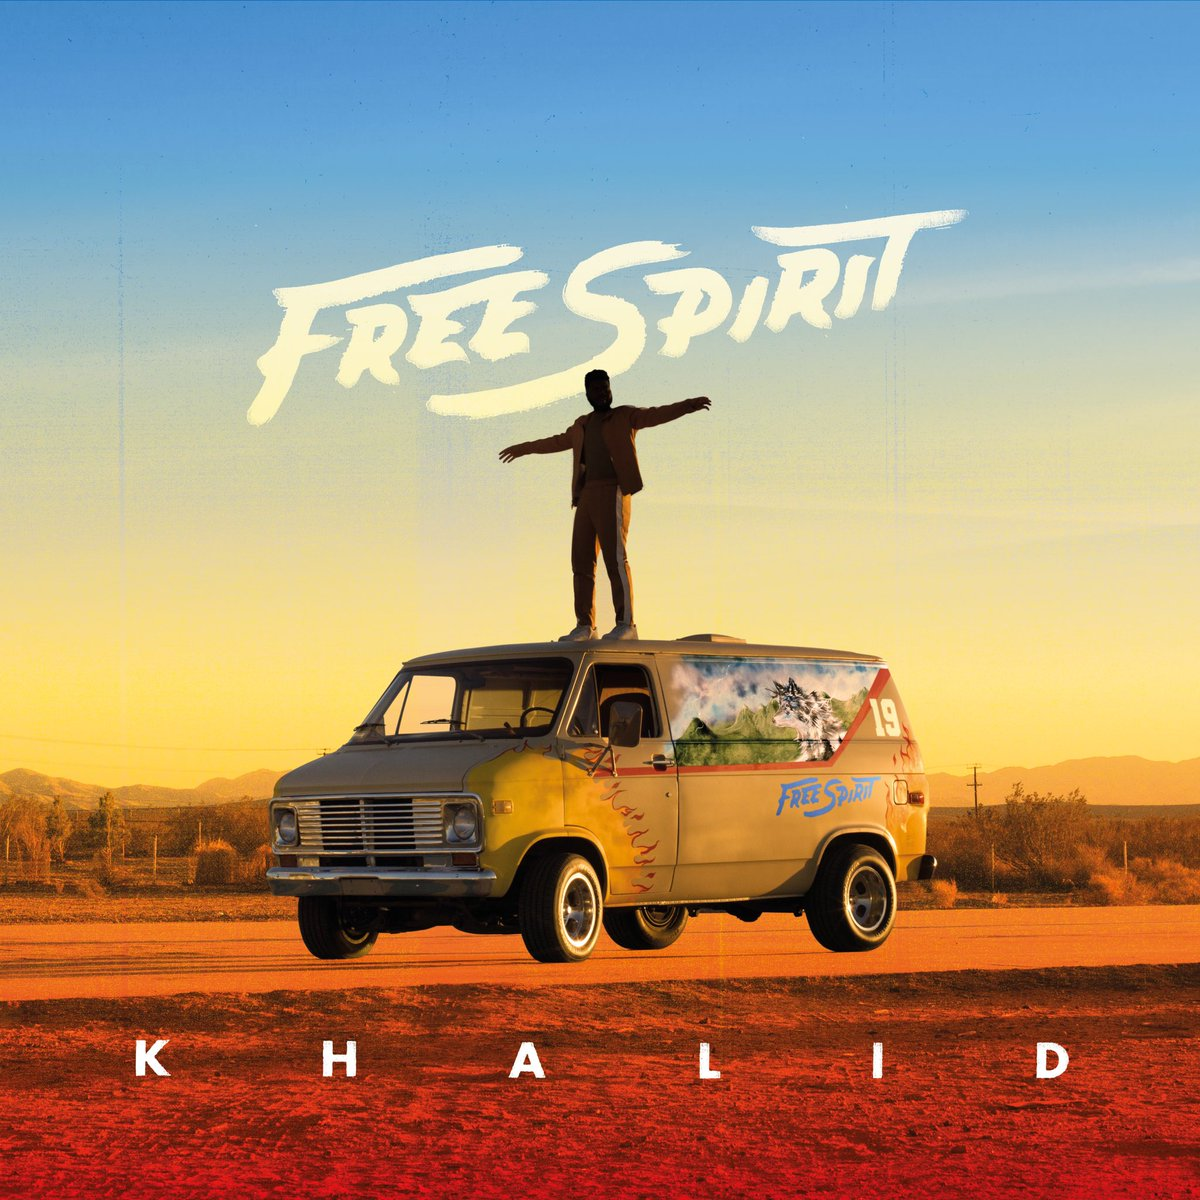 Free Spirit the album Drops on April 5th Make sure to pre-order on March 7th. ❤️🤟🏾